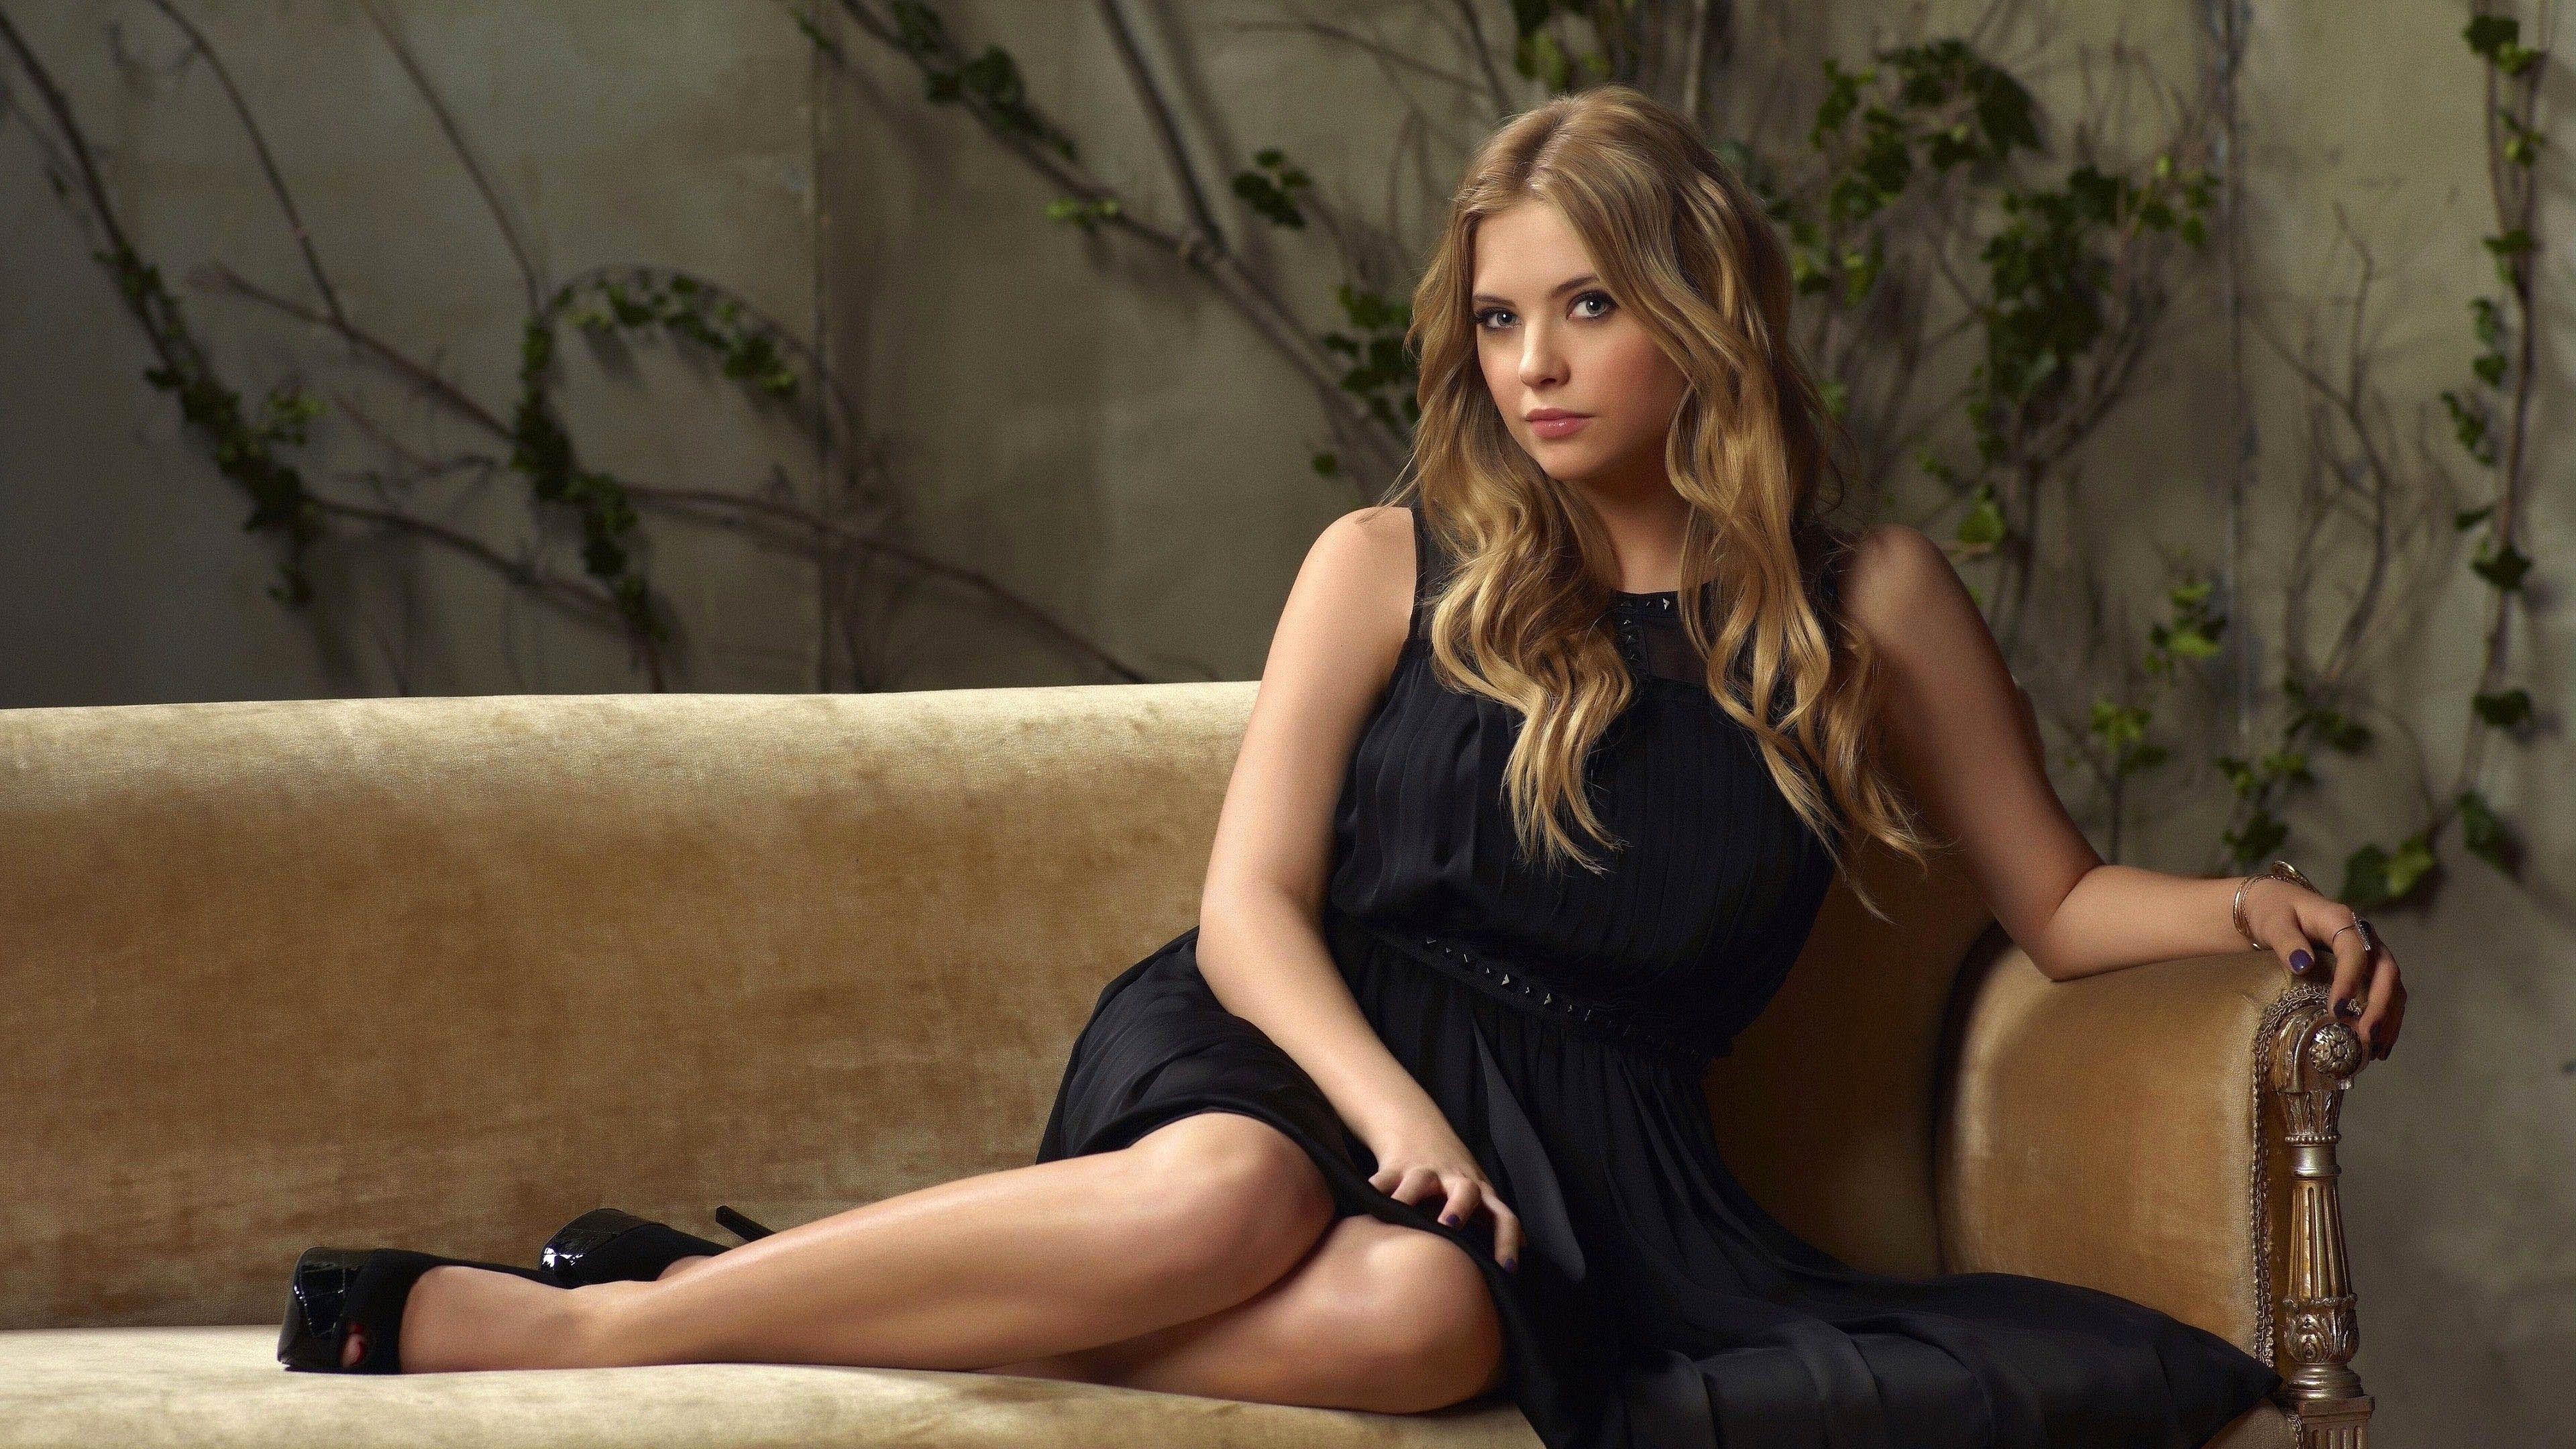 ashley benson wallpapers high quality download free | wallpapers